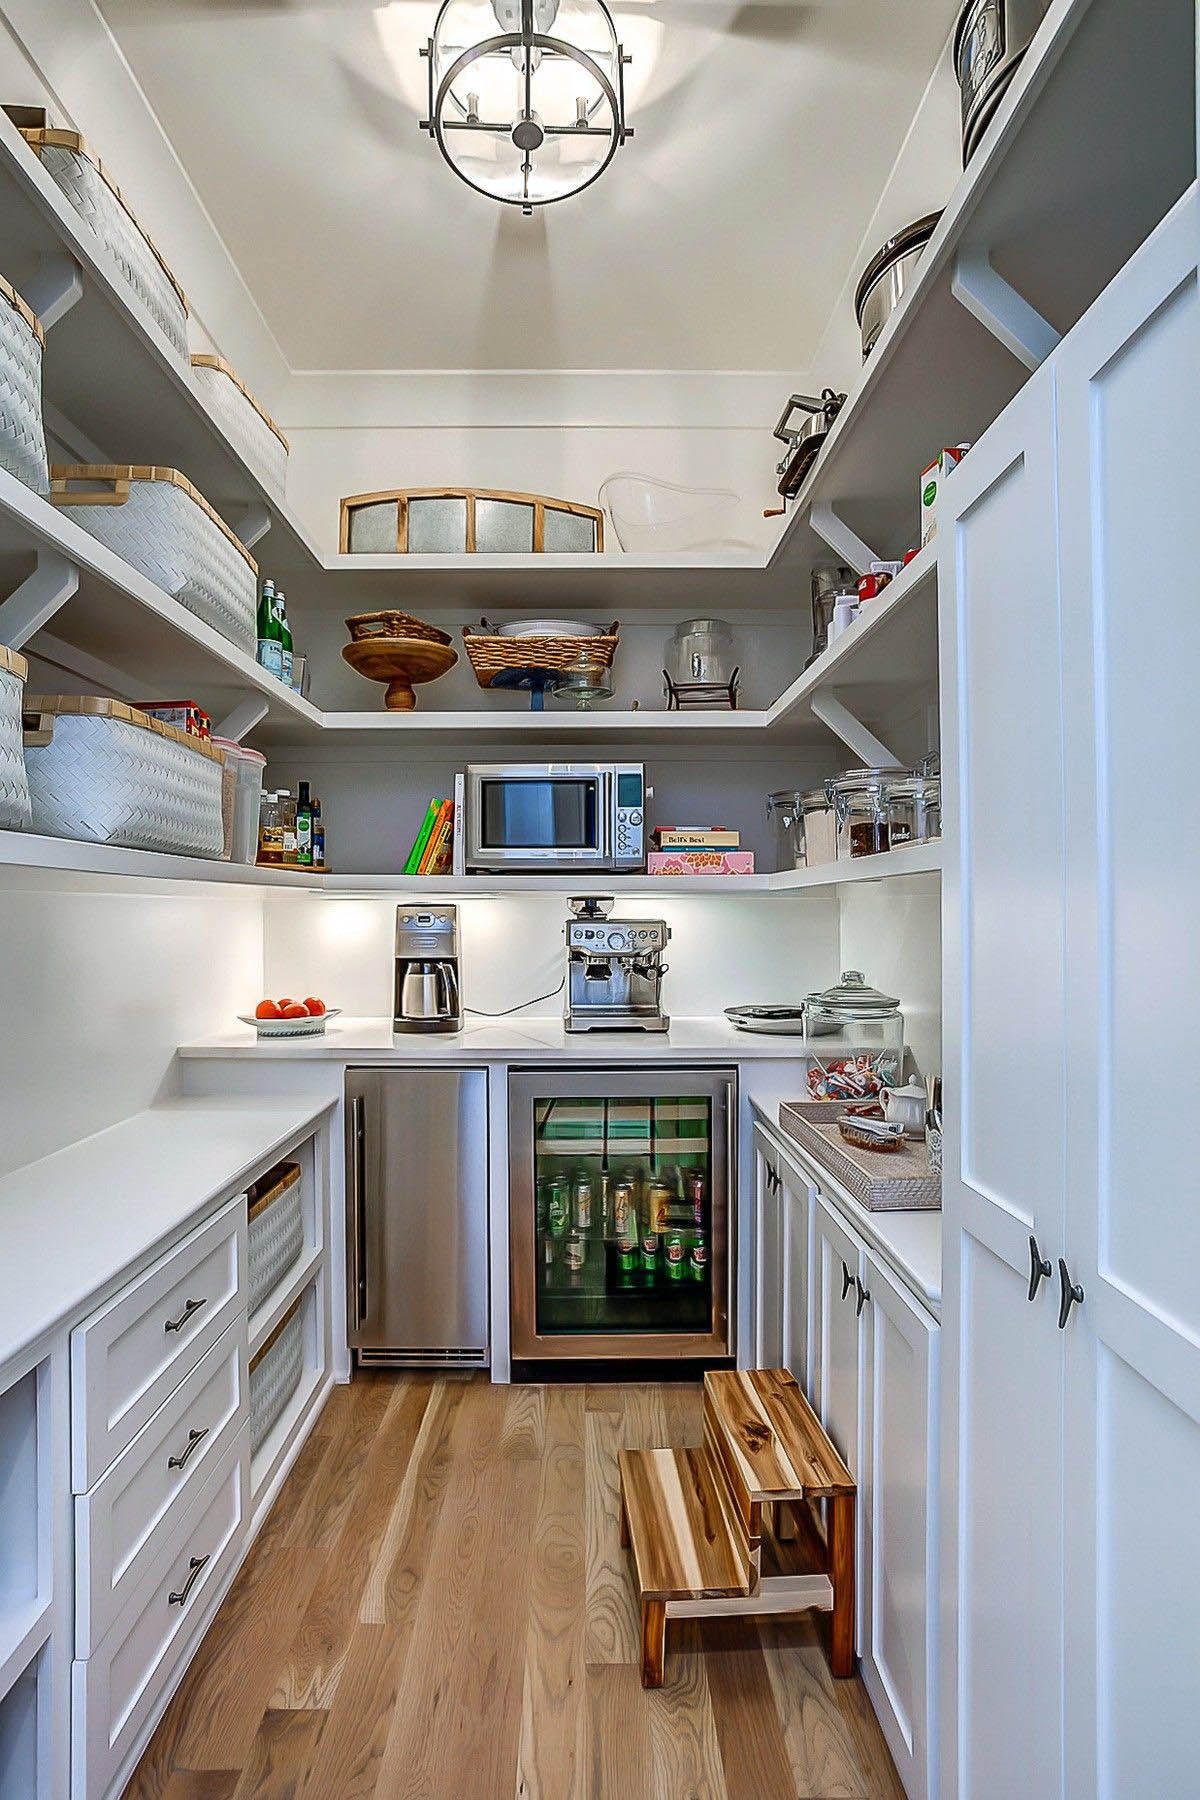 THE LEADING 16 COOKING AREA CUPBOARD IDEAS FOR 2019 #kitchenpantrycabinets